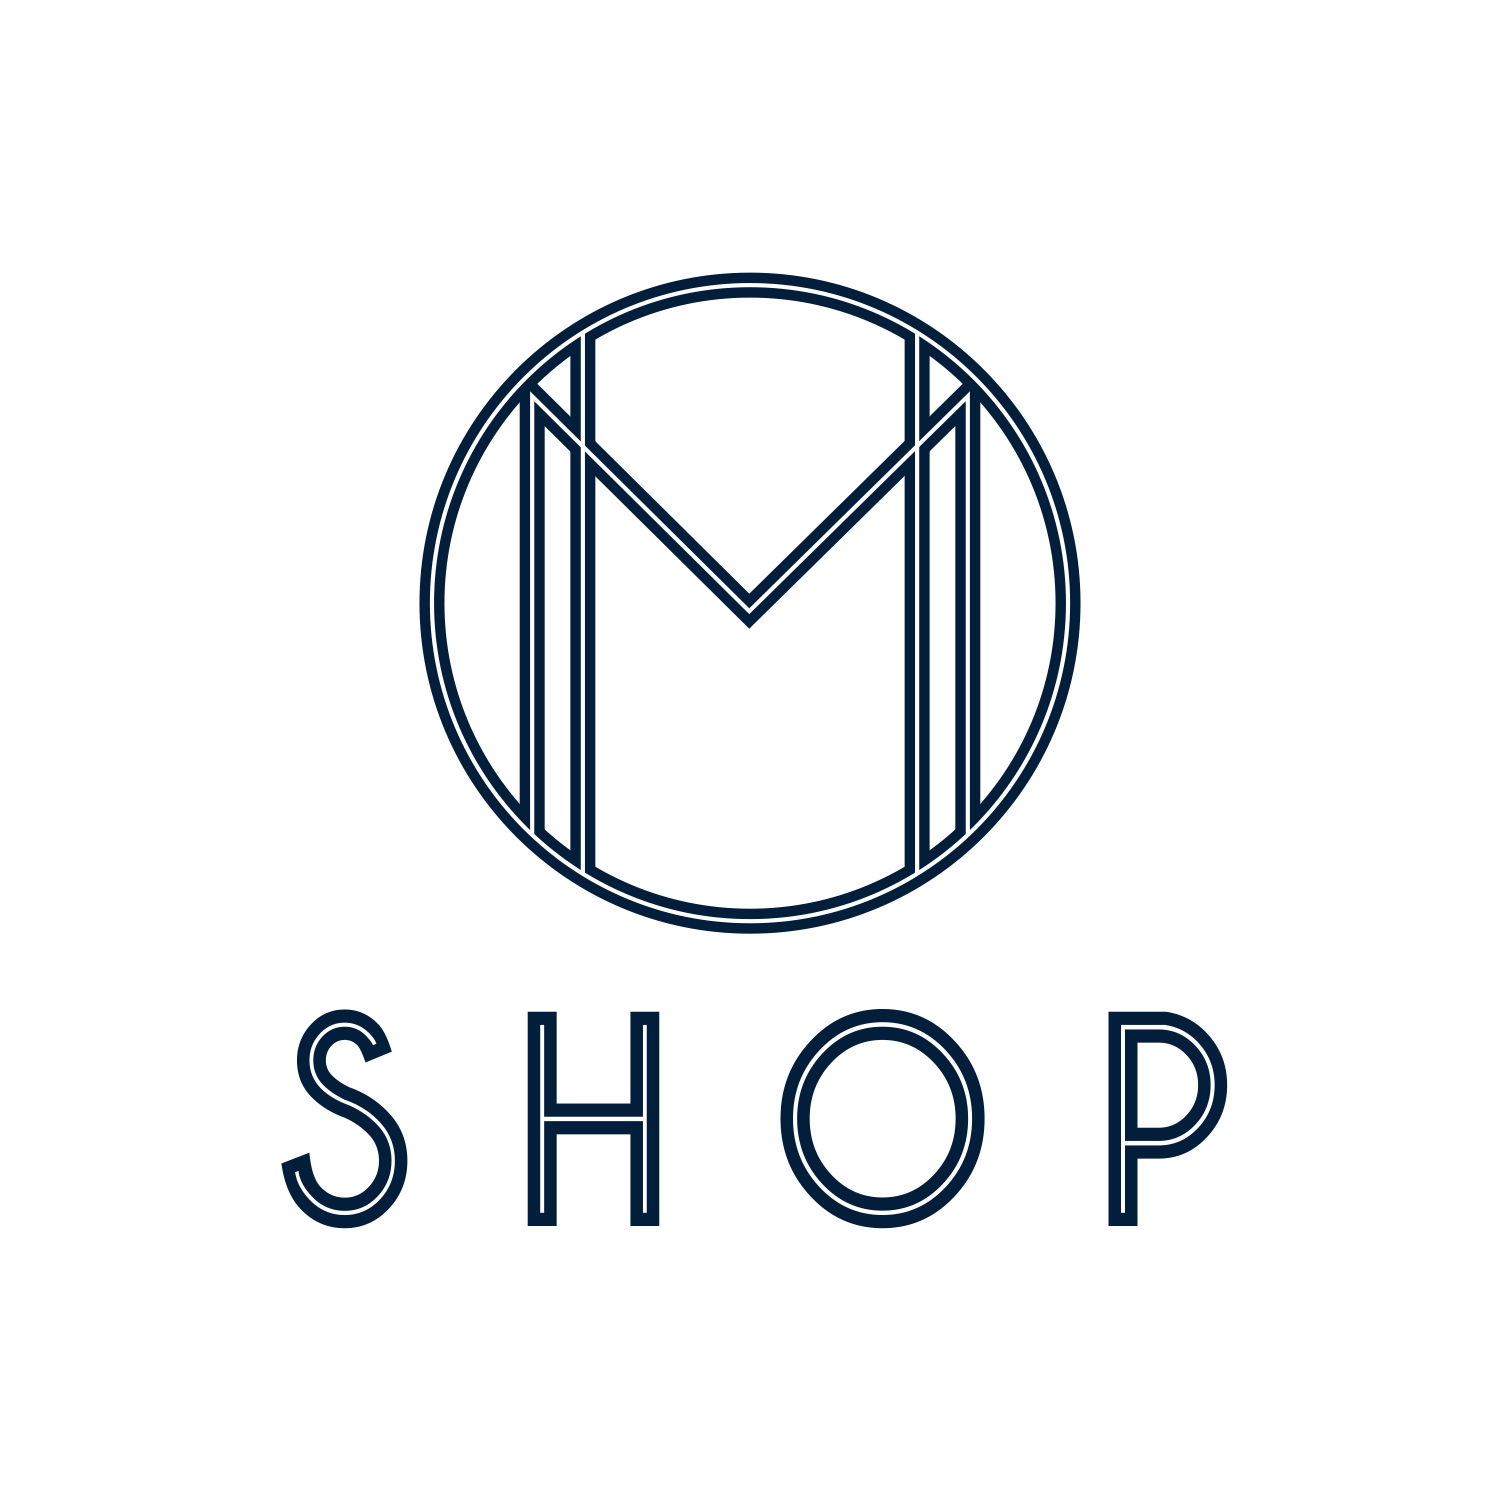 M SHOP - START YOUR FASHION COMPANY® GLOBALLY